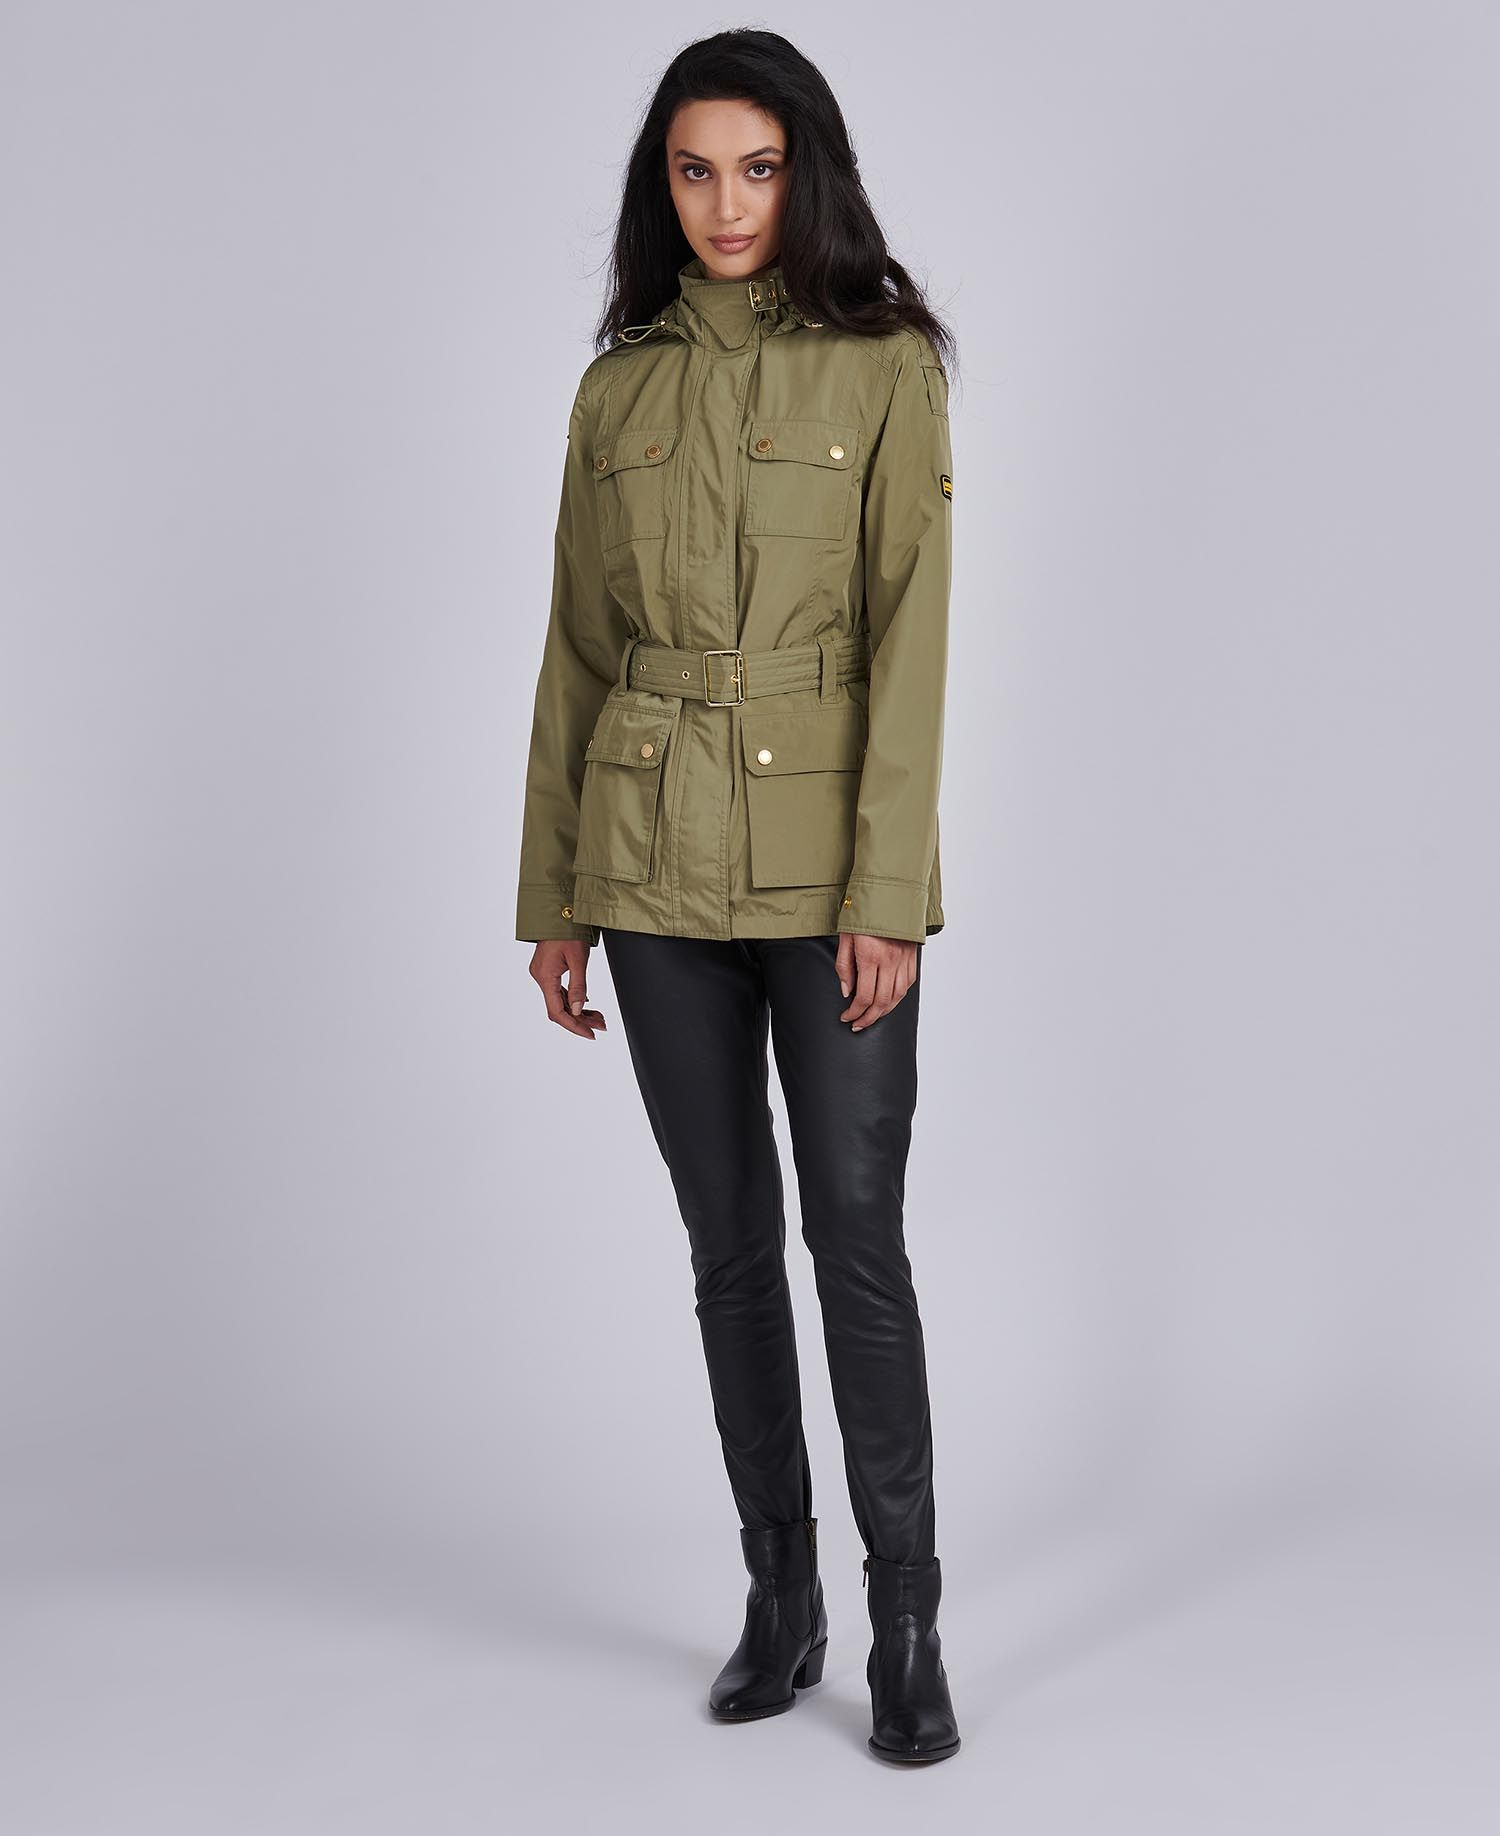 Barbour International Pace Jacket in Light Army Green